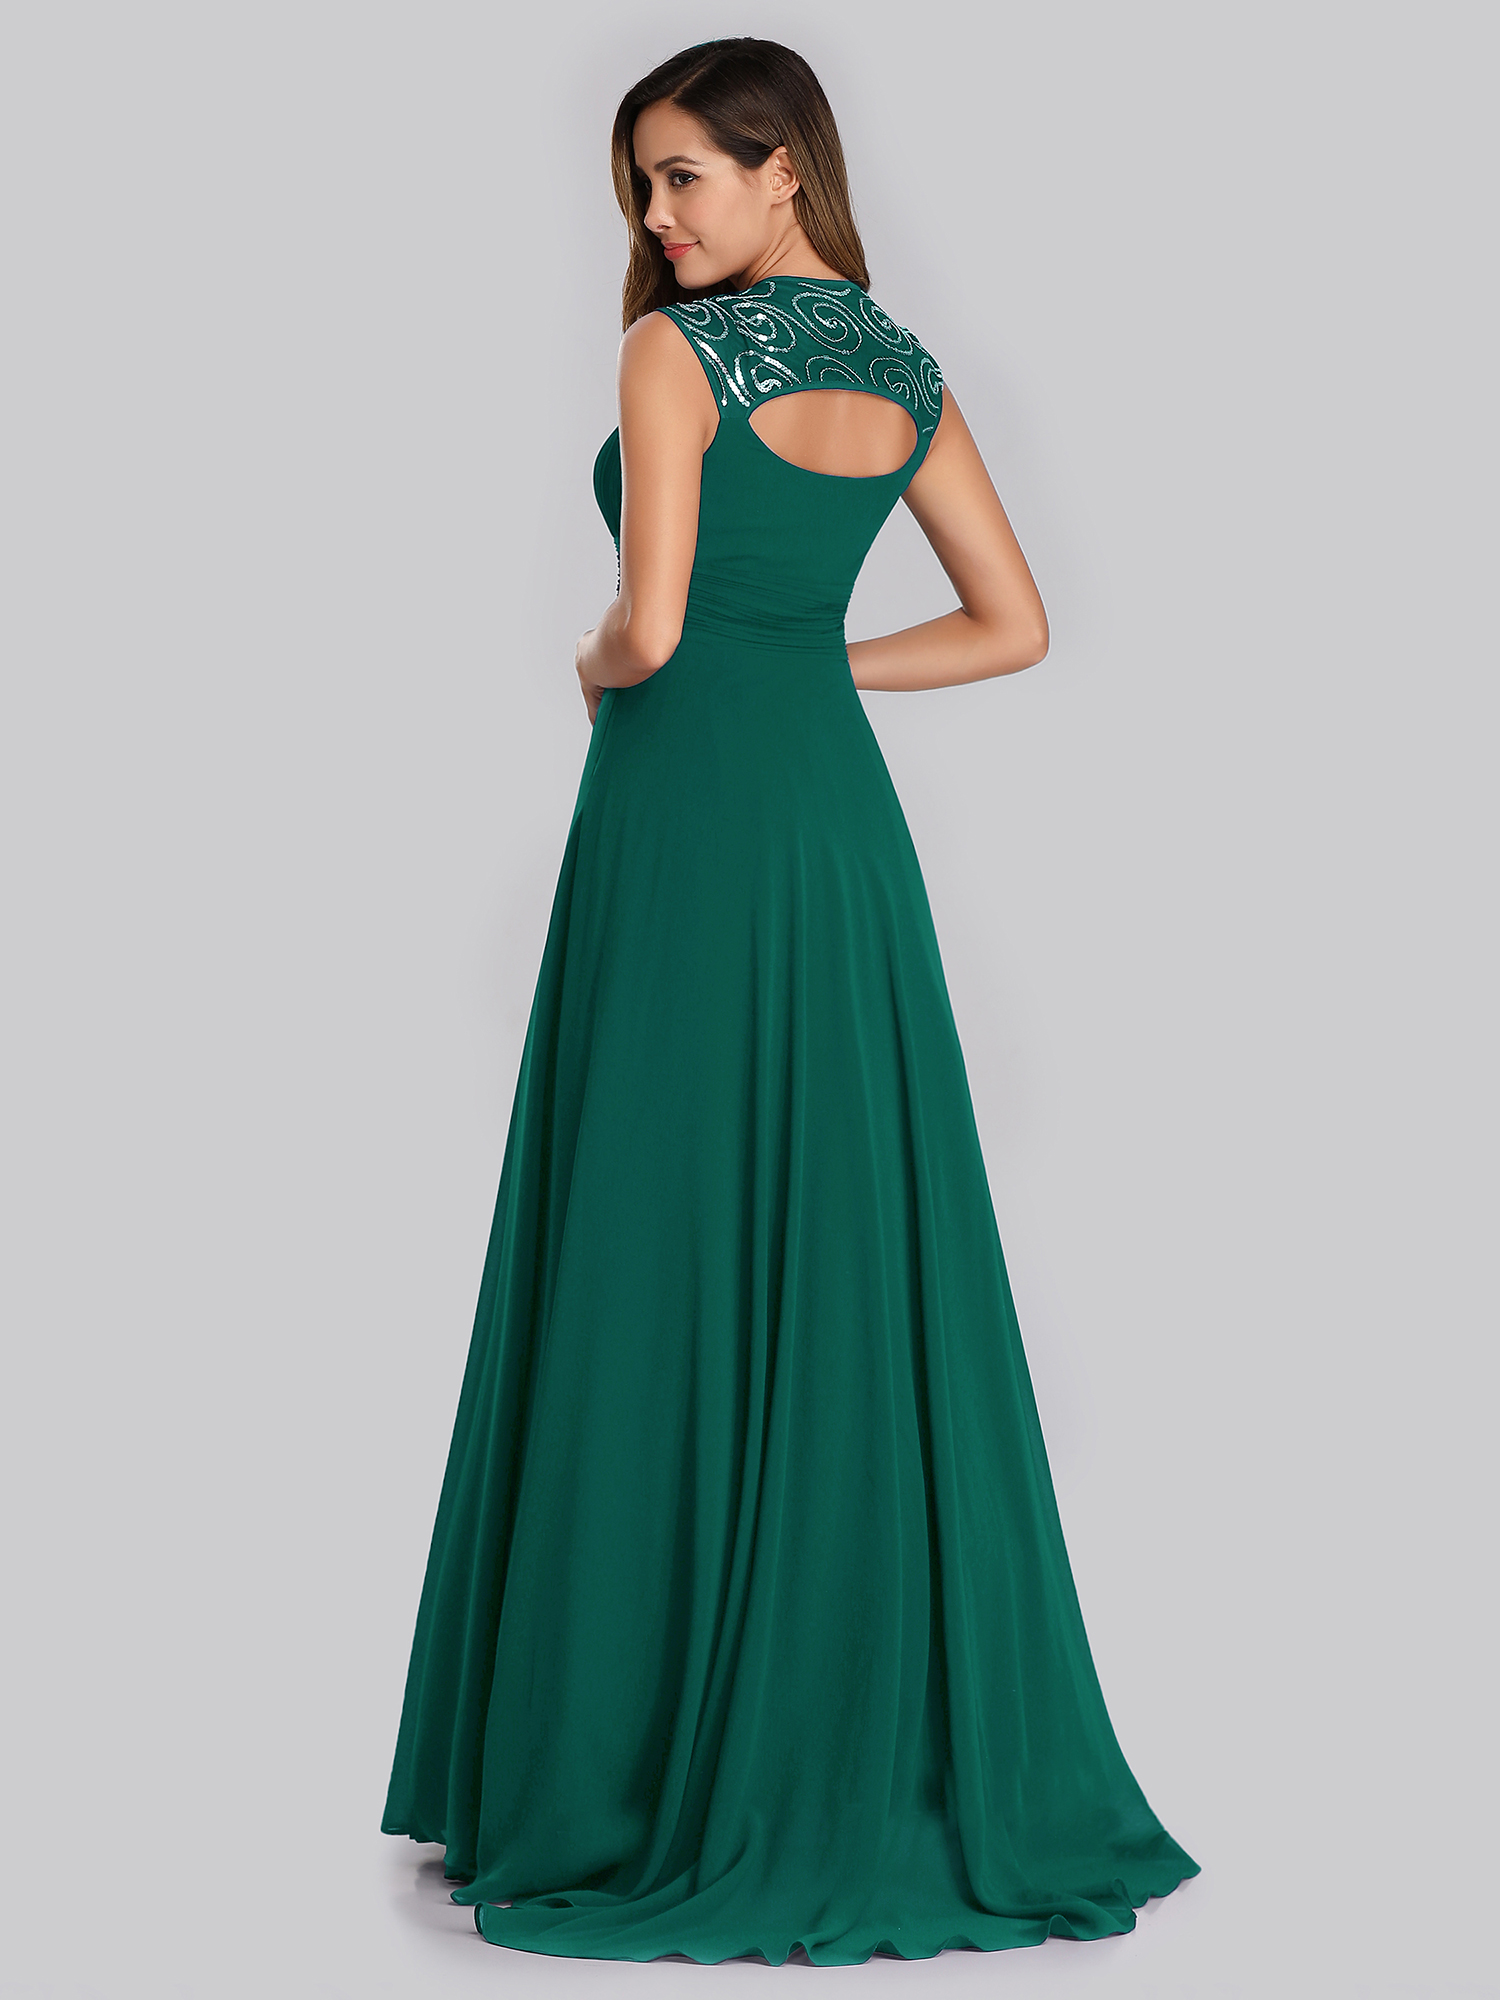 Ever-Pretty-Cap-Sleeve-Bridesmaid-Dresses-Elegant-Long-V-neck-Evening-Gown-09672 thumbnail 17